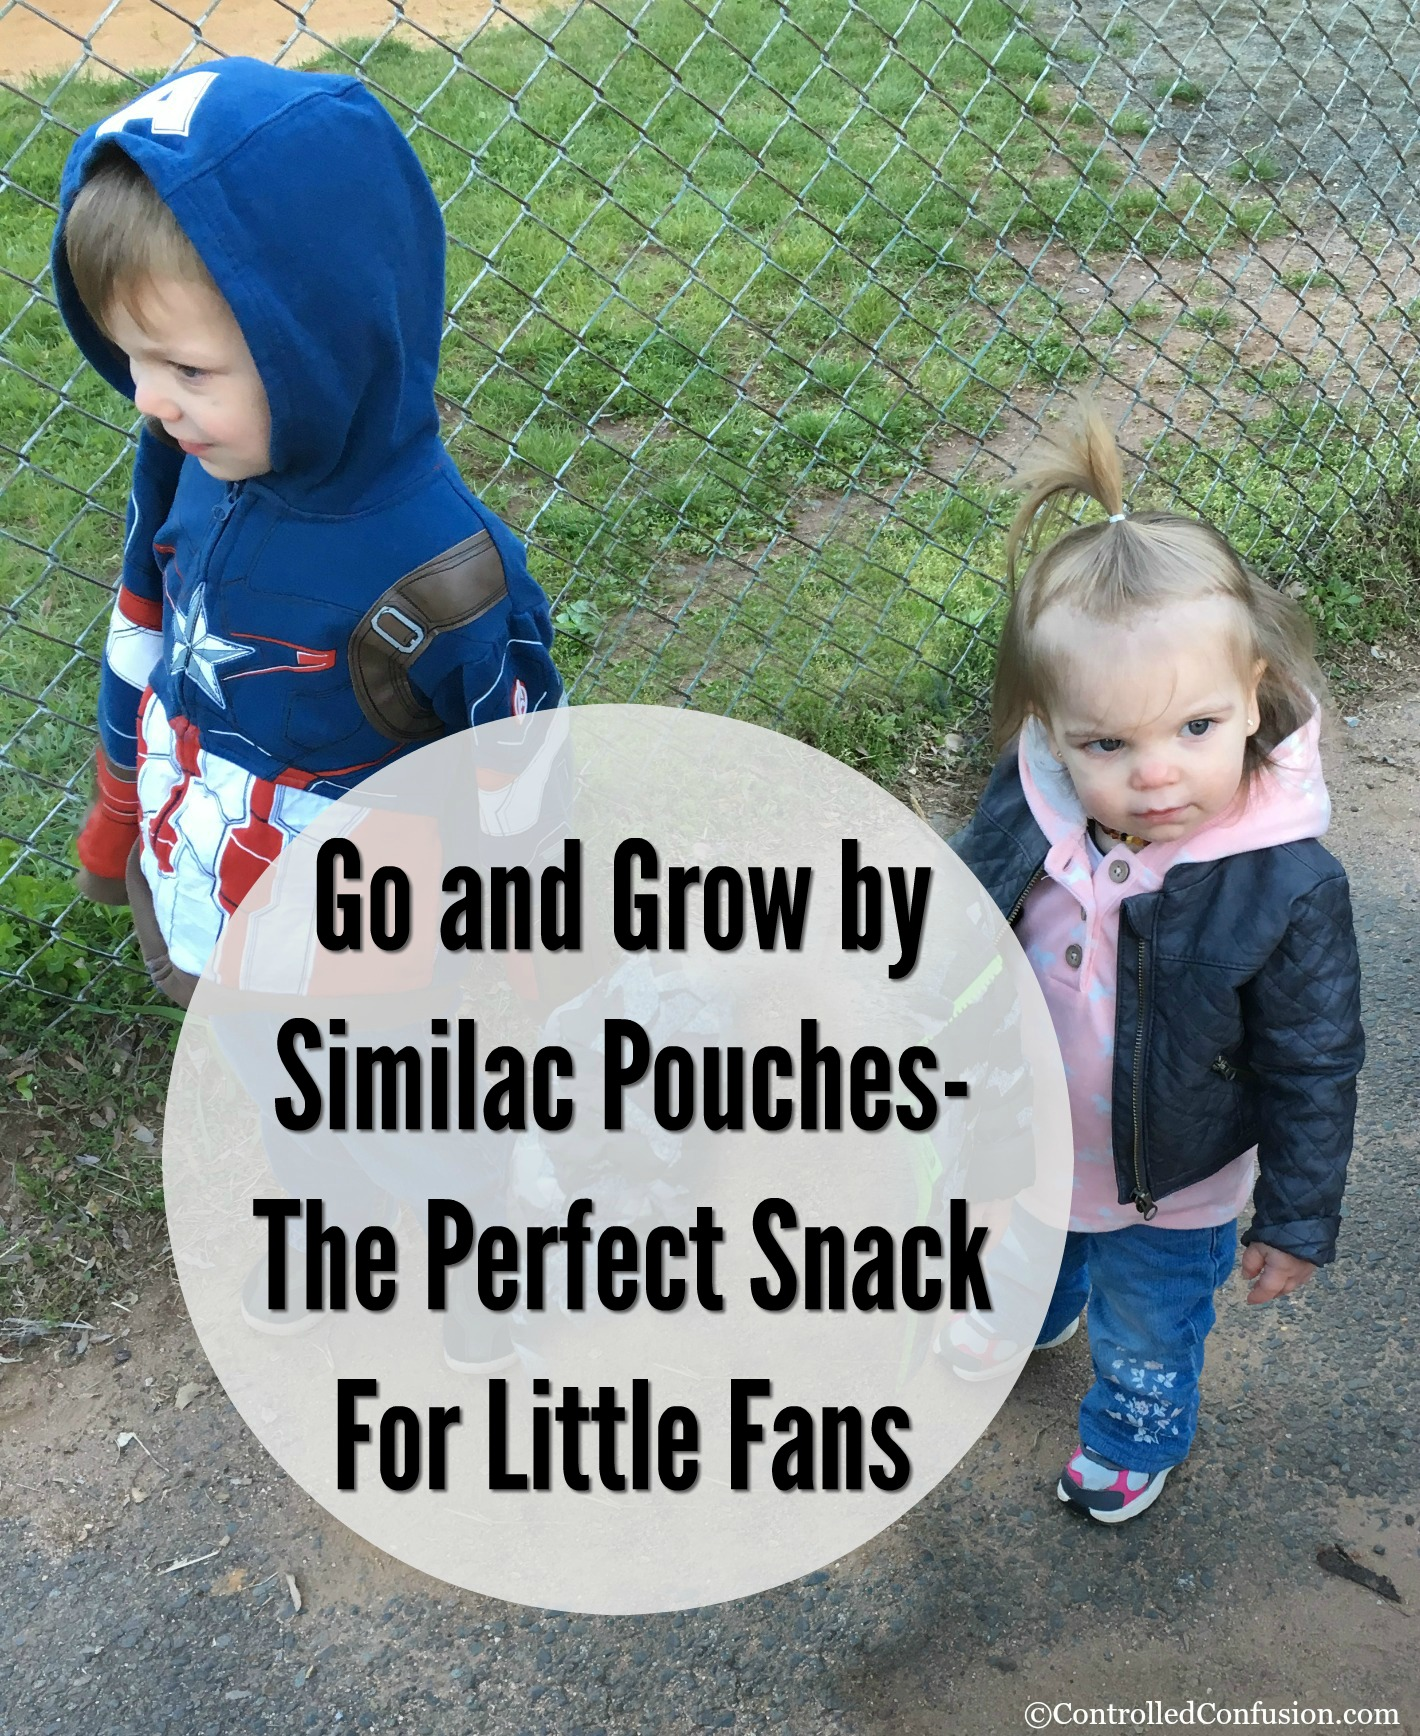 Go and Grow by Similac Pouches- The Perfect Snack For Little Fans